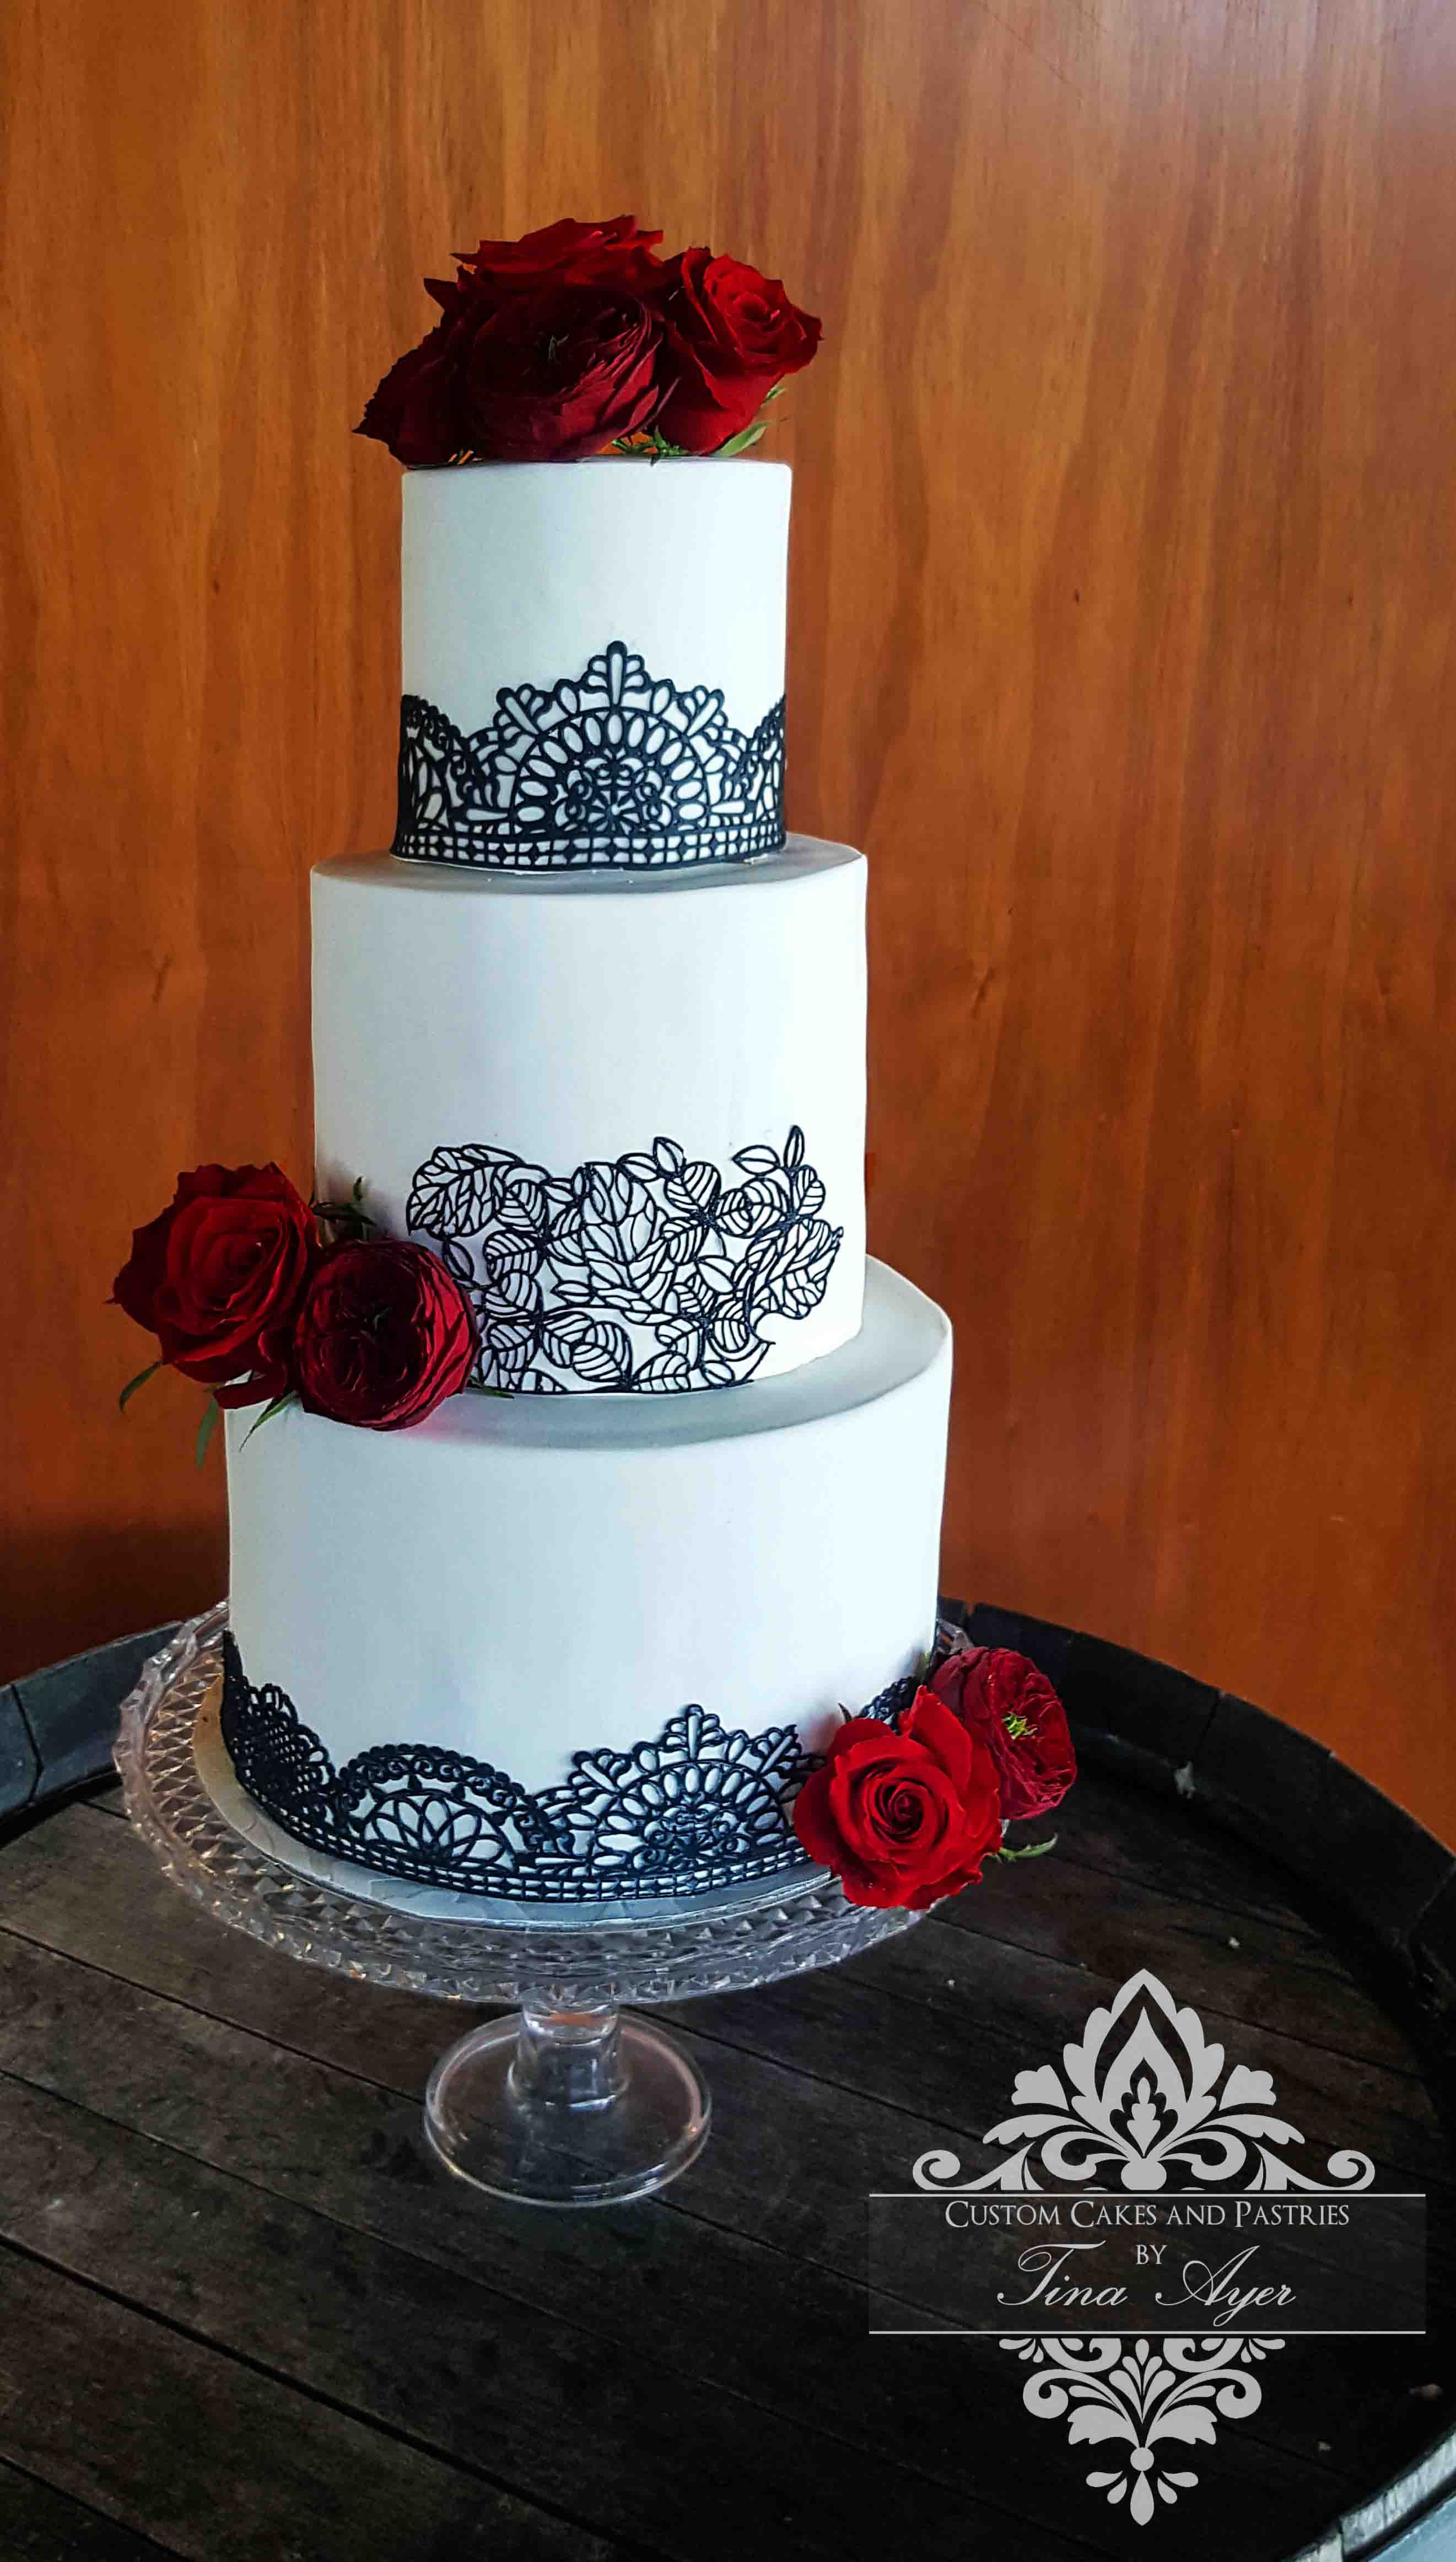 Black and white baby mobile designed and made in australia by tina - White Wedding Cake With Black Lace And Deep Red Roses Custom Cakes By Tina Ayer